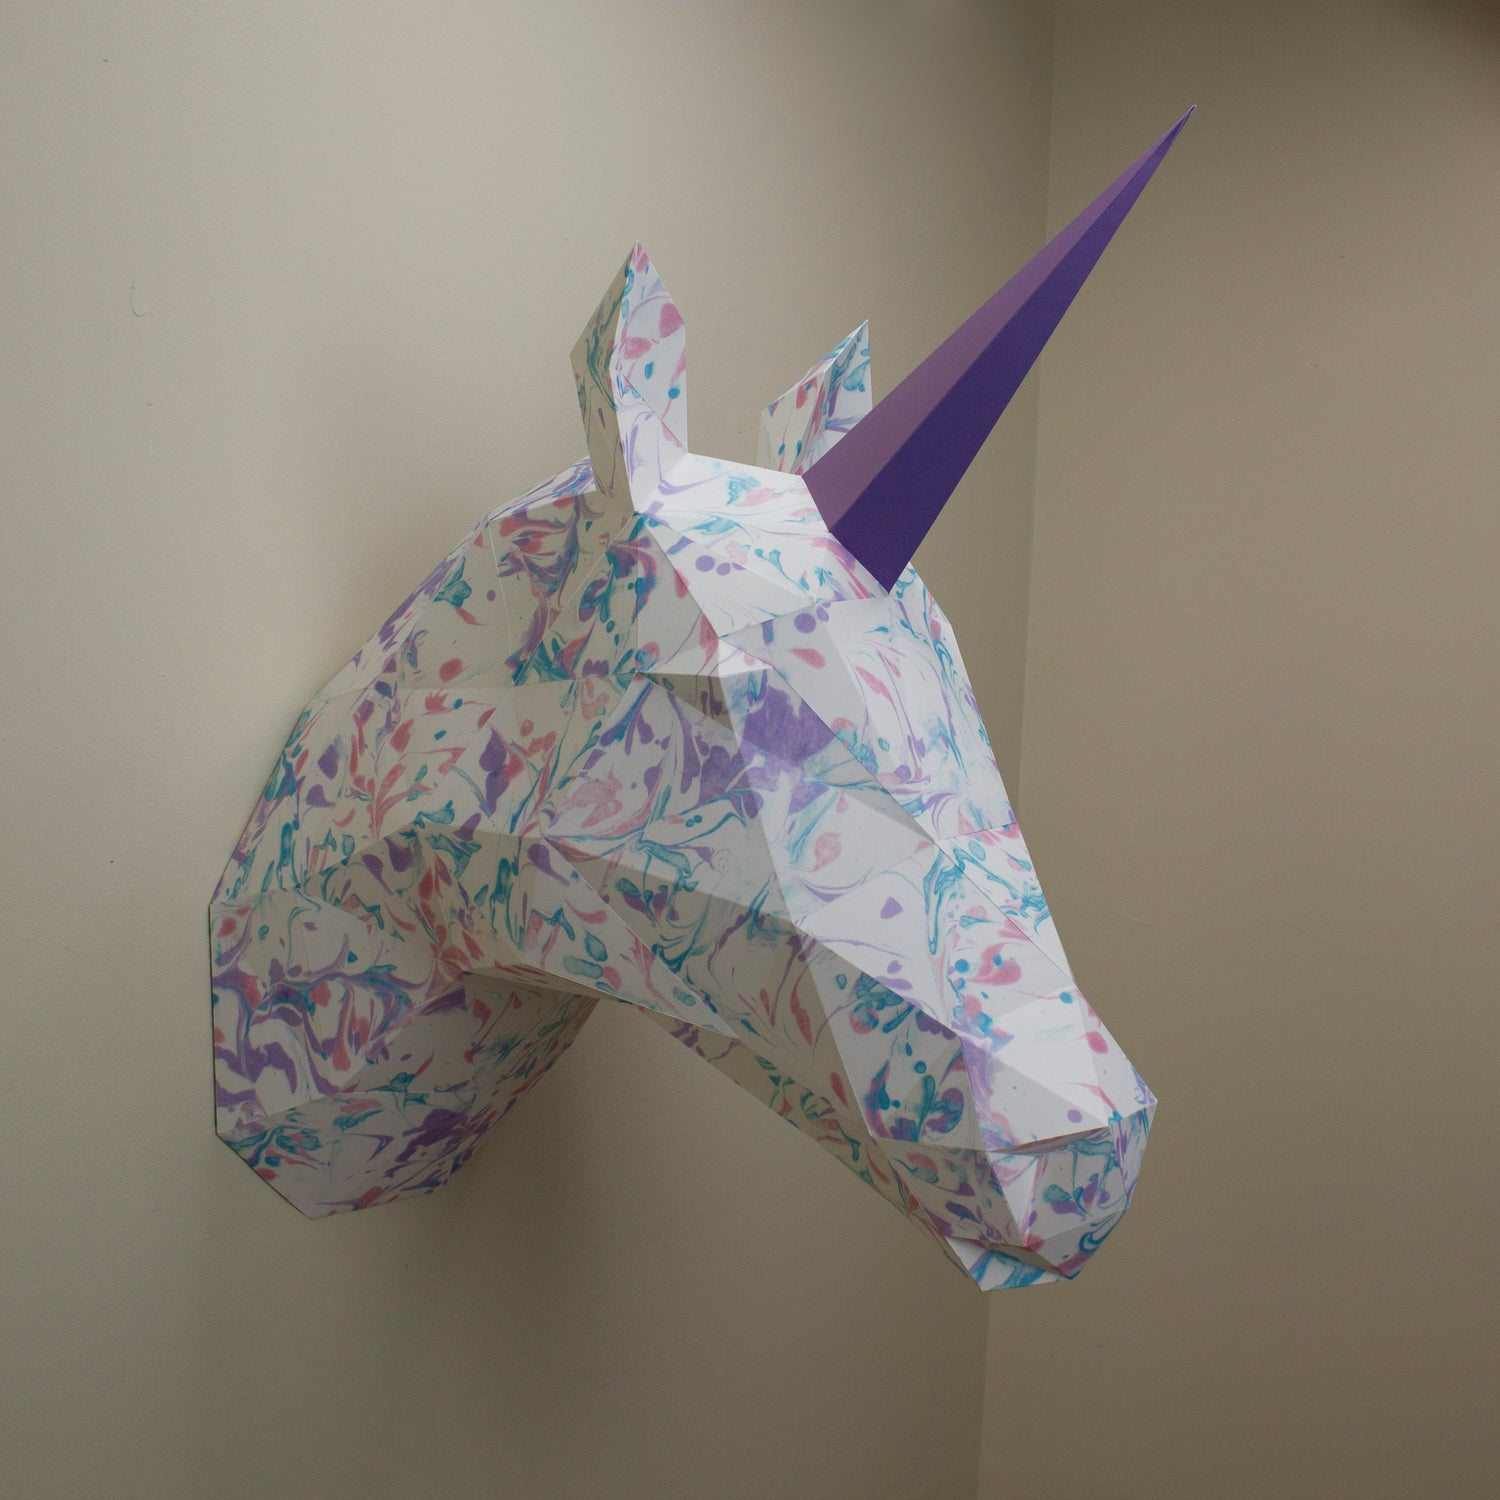 Papercraft Kit Unicorn